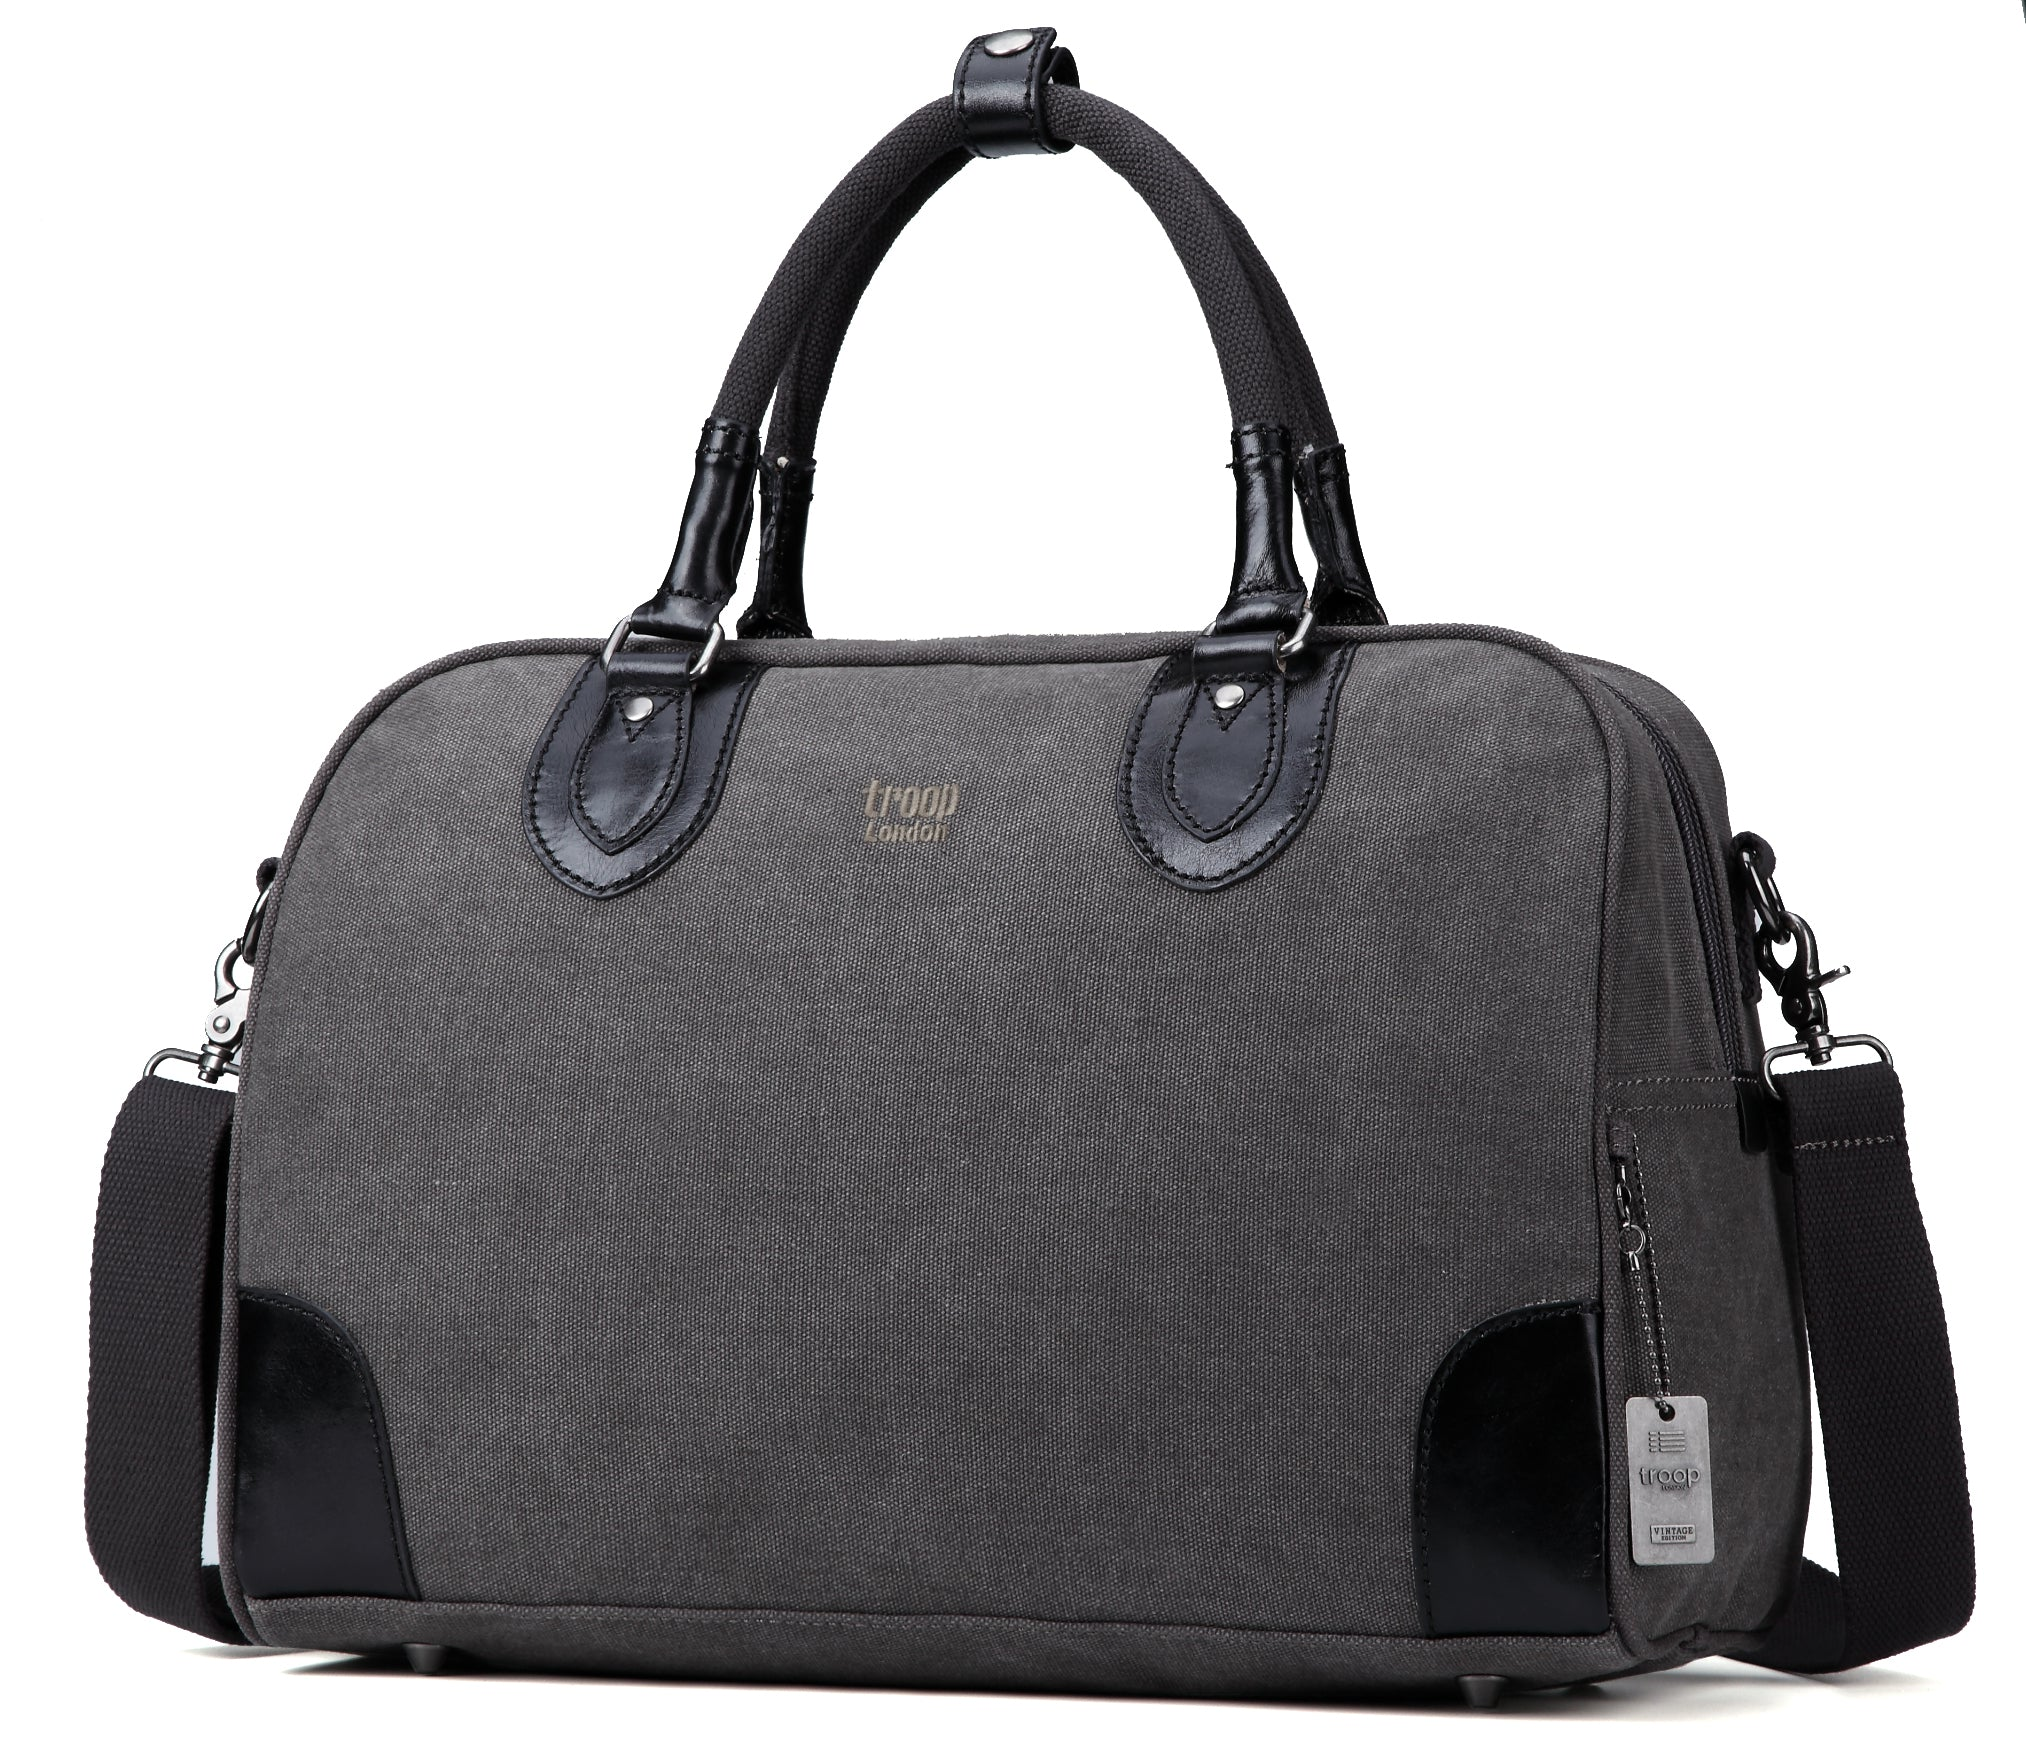 Troop London Classic Canvas Holdall Top Handle Gym Bag TRP0262 Black